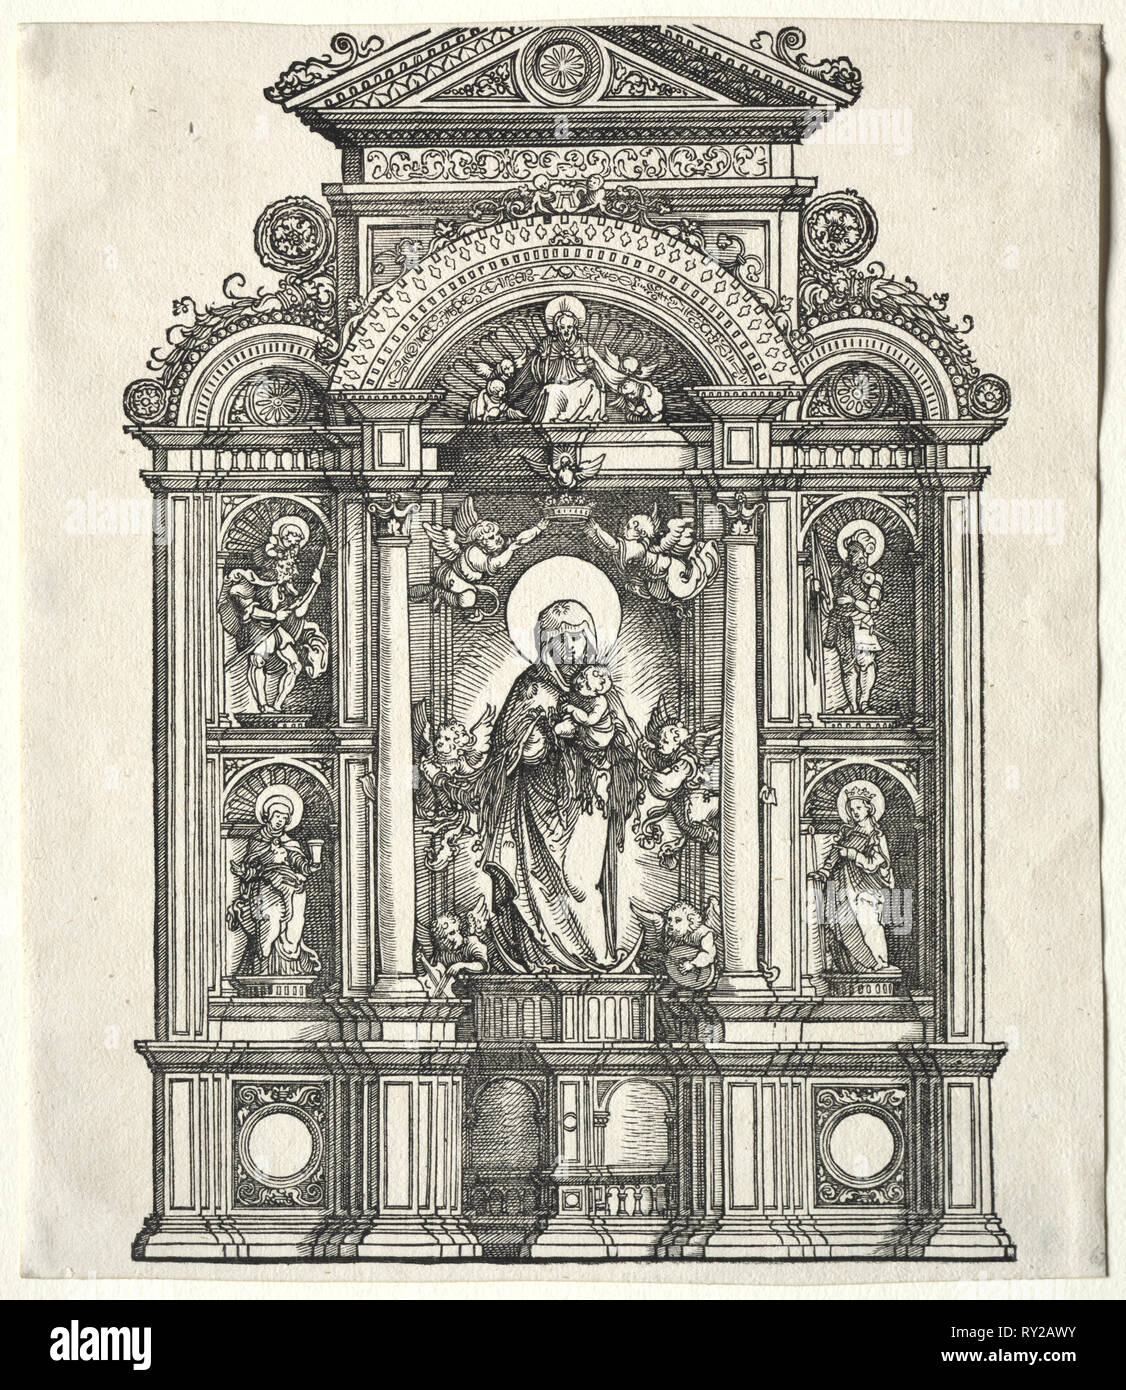 Great Altar with the Virgin, in a border with SS. Christopher, George, Barbara, Catherine, 1520. Albrecht Altdorfer (German, c. 1480-1538). Woodcut - Stock Image